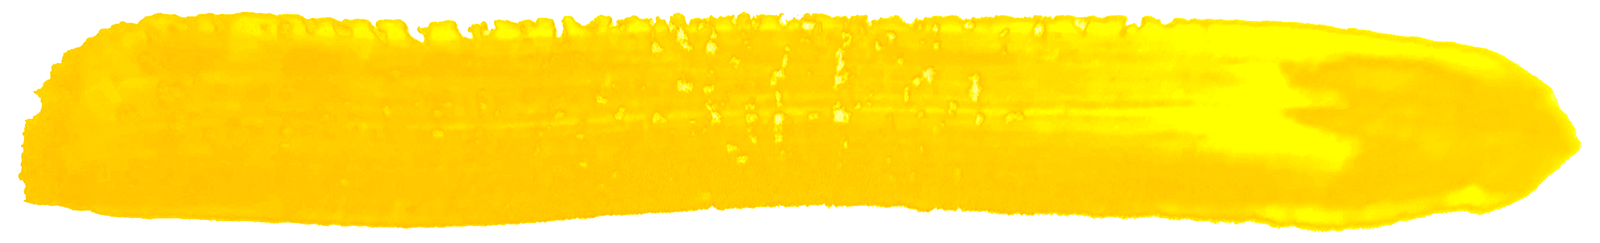 escape-the-toxic-office-yellow-big-line